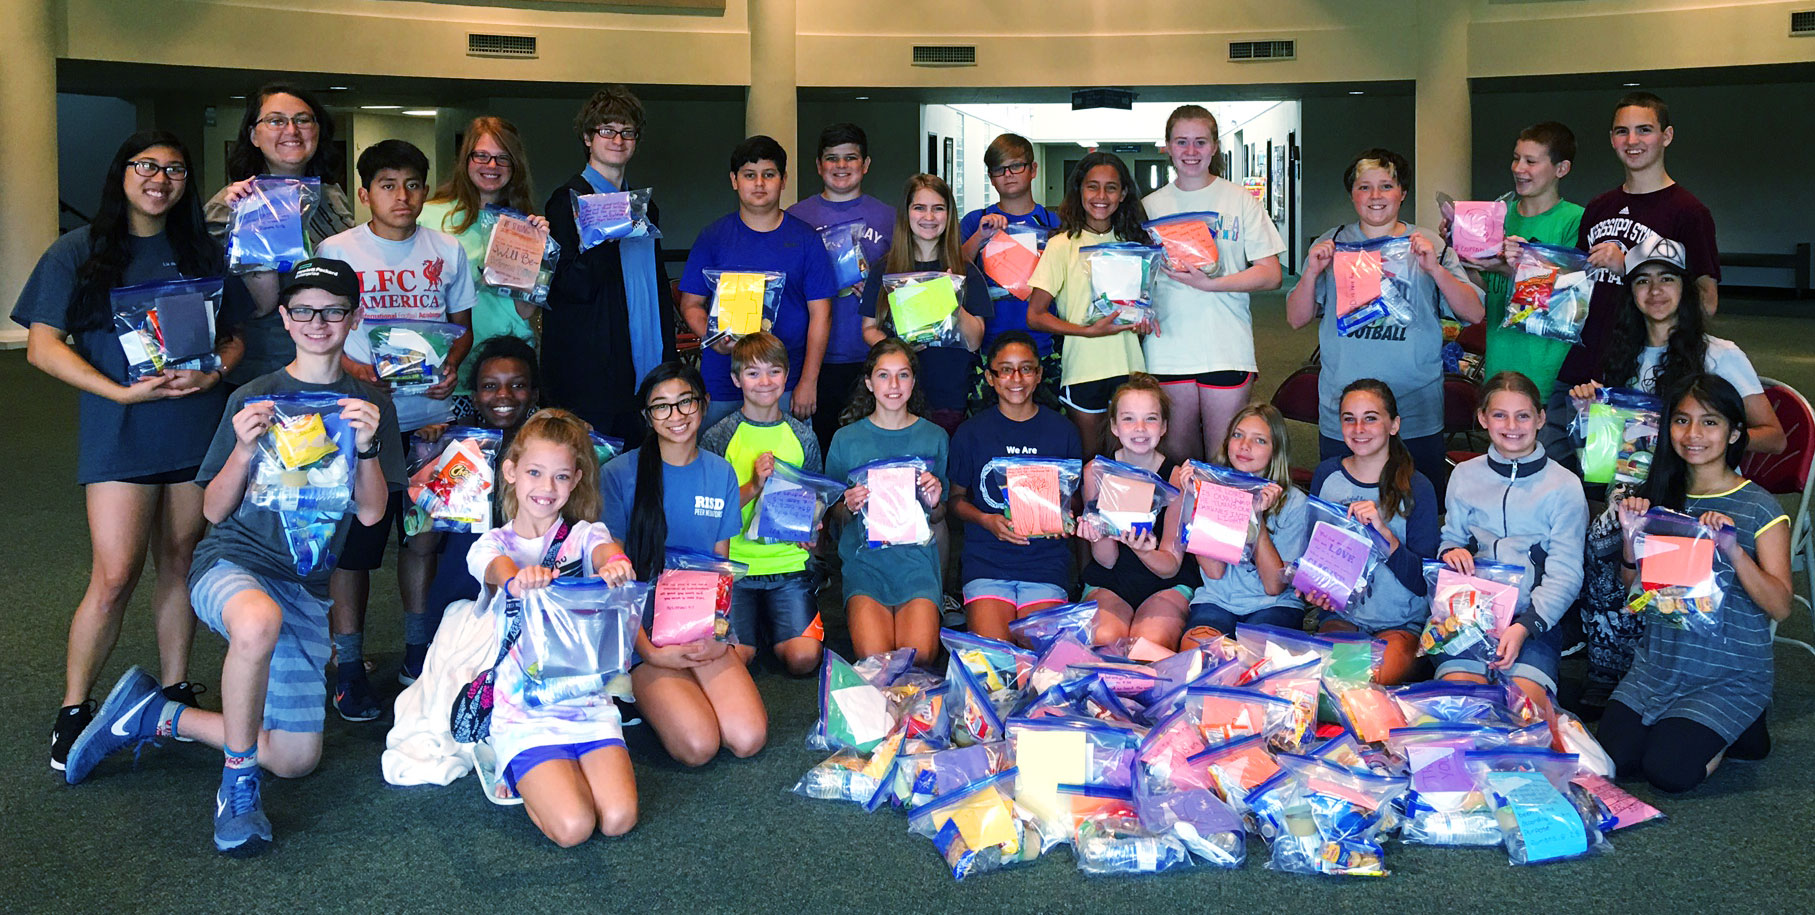 """Youth Week Mission Day - On Tuesday our Crossfire Youth put together """"Manna Bags"""" for people in need. These bags are filled with non-perishable items. Stop by the youth table on Sunday to grab a bag or two to keep in you car for that person who will need it the most!"""